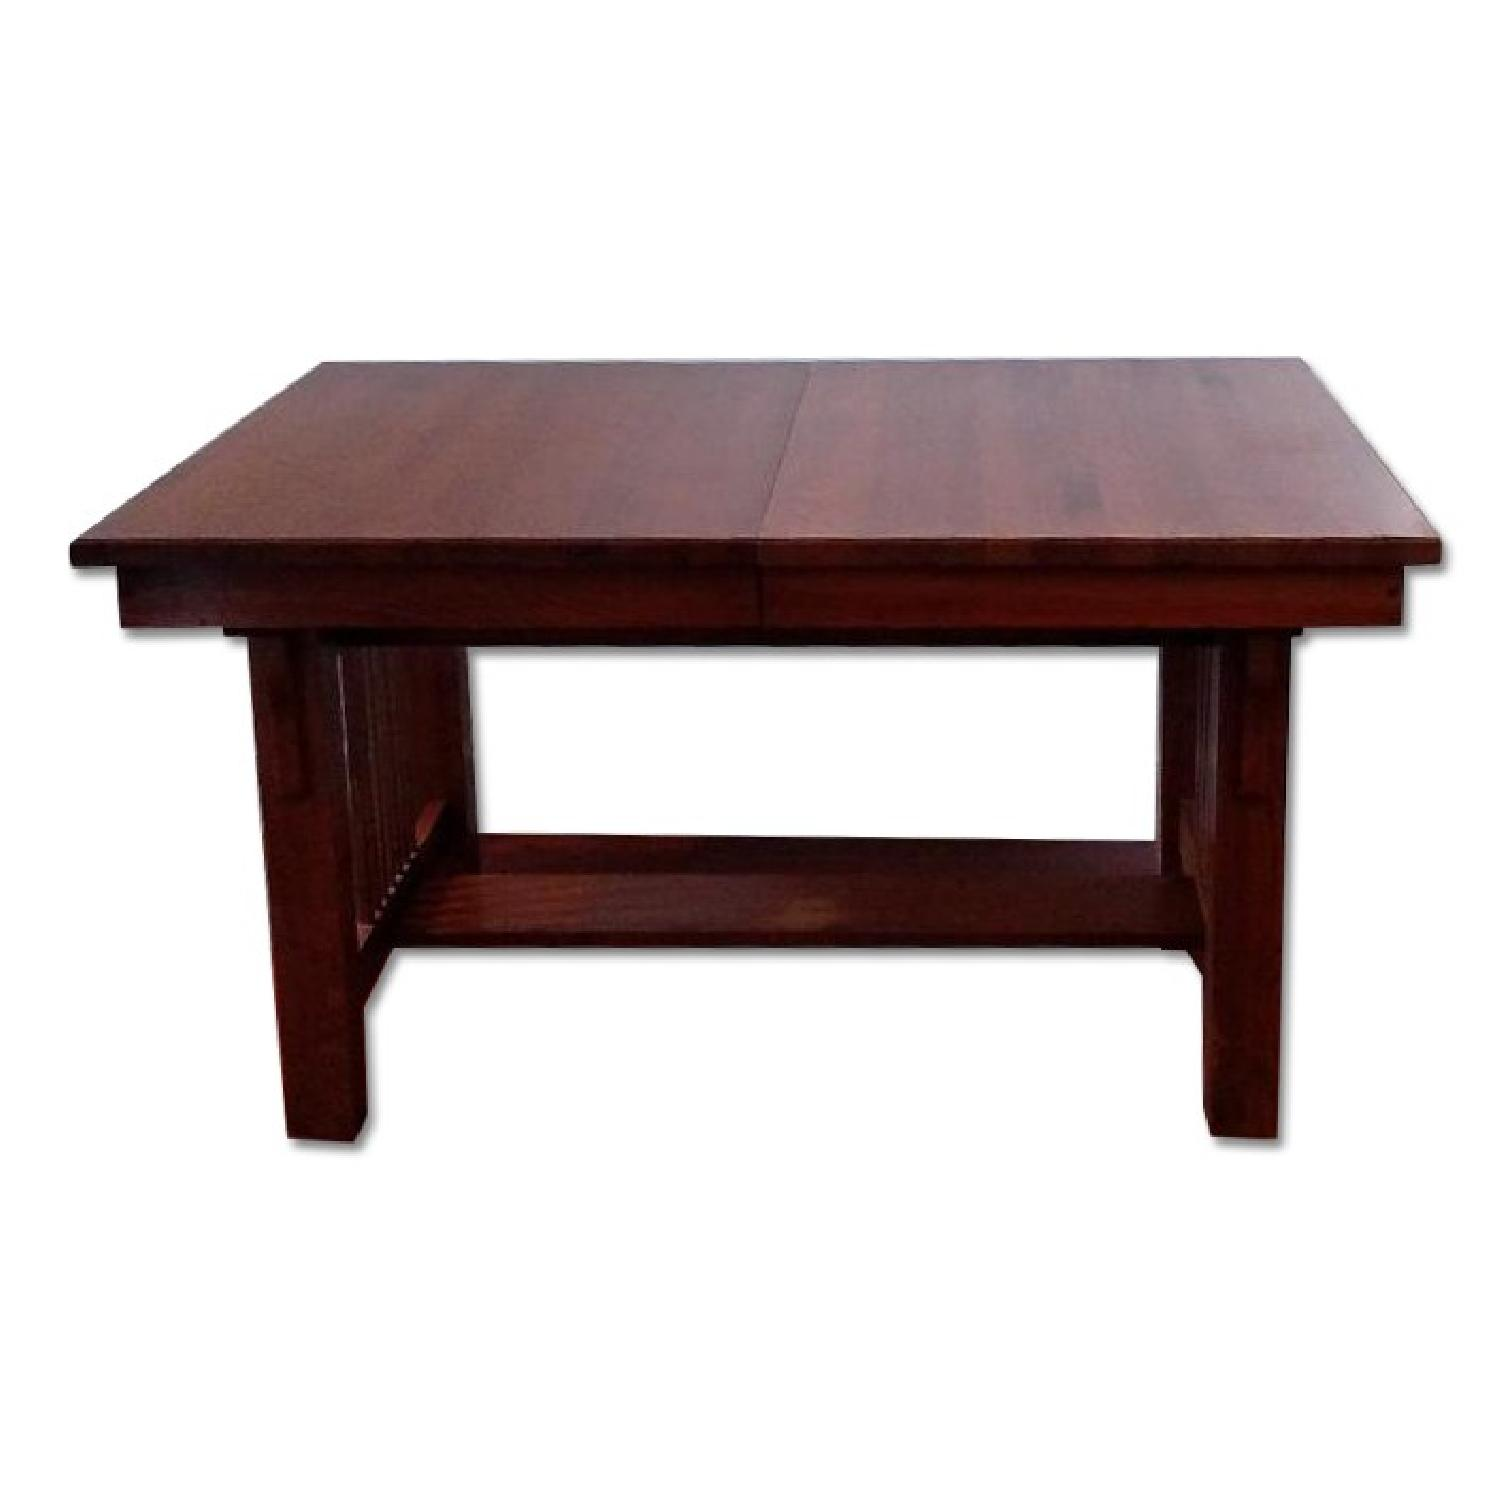 Solid Oak Mission Style Dining Table w/ 2 Self-Raising Leaves - image-0